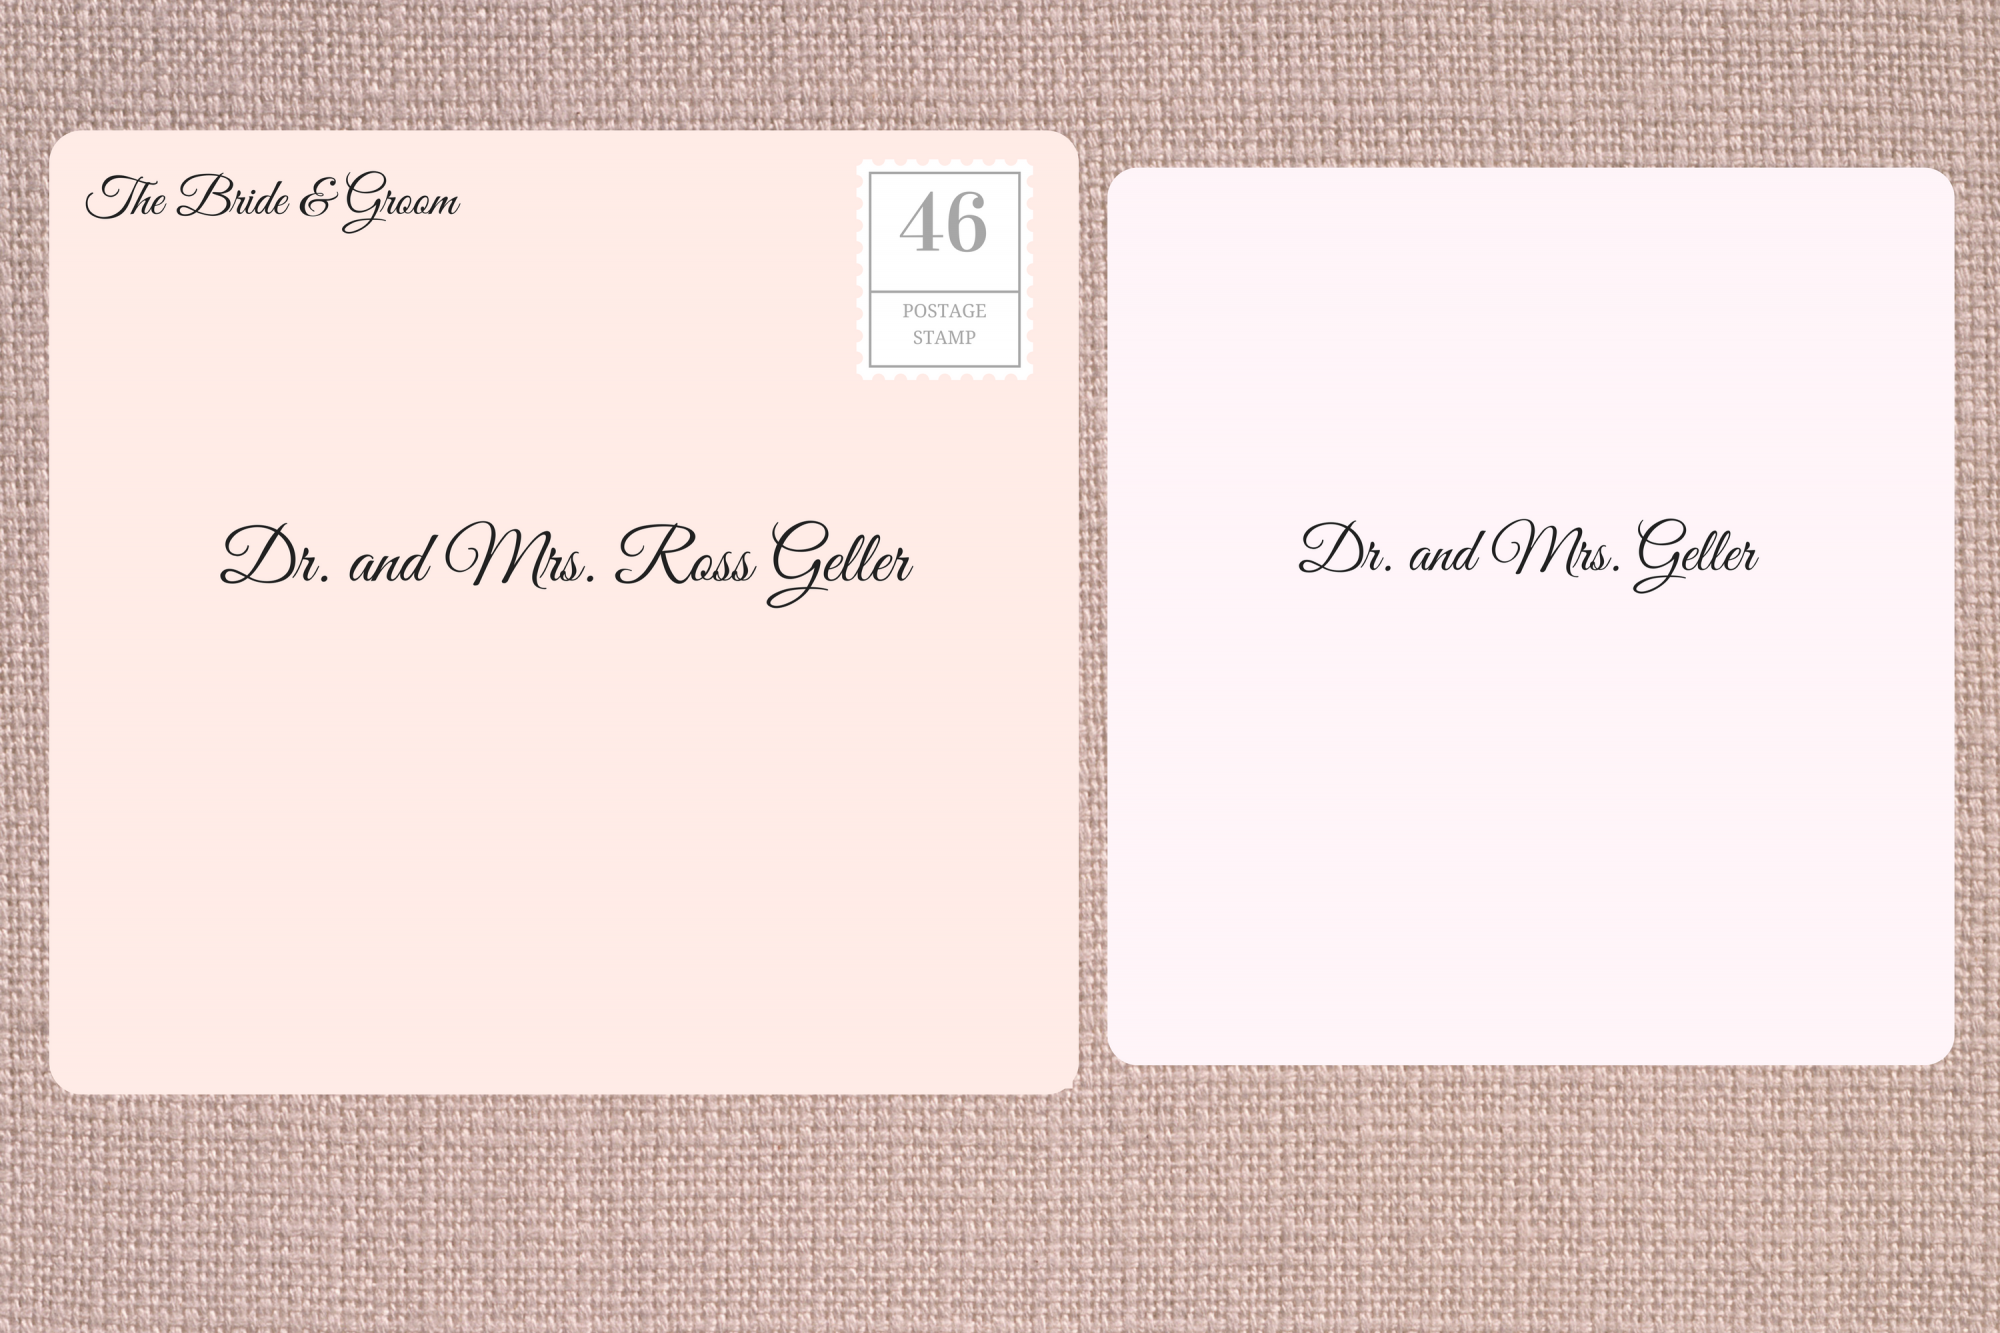 Addressing Double Envelope Wedding Invitations to Academic Doctor